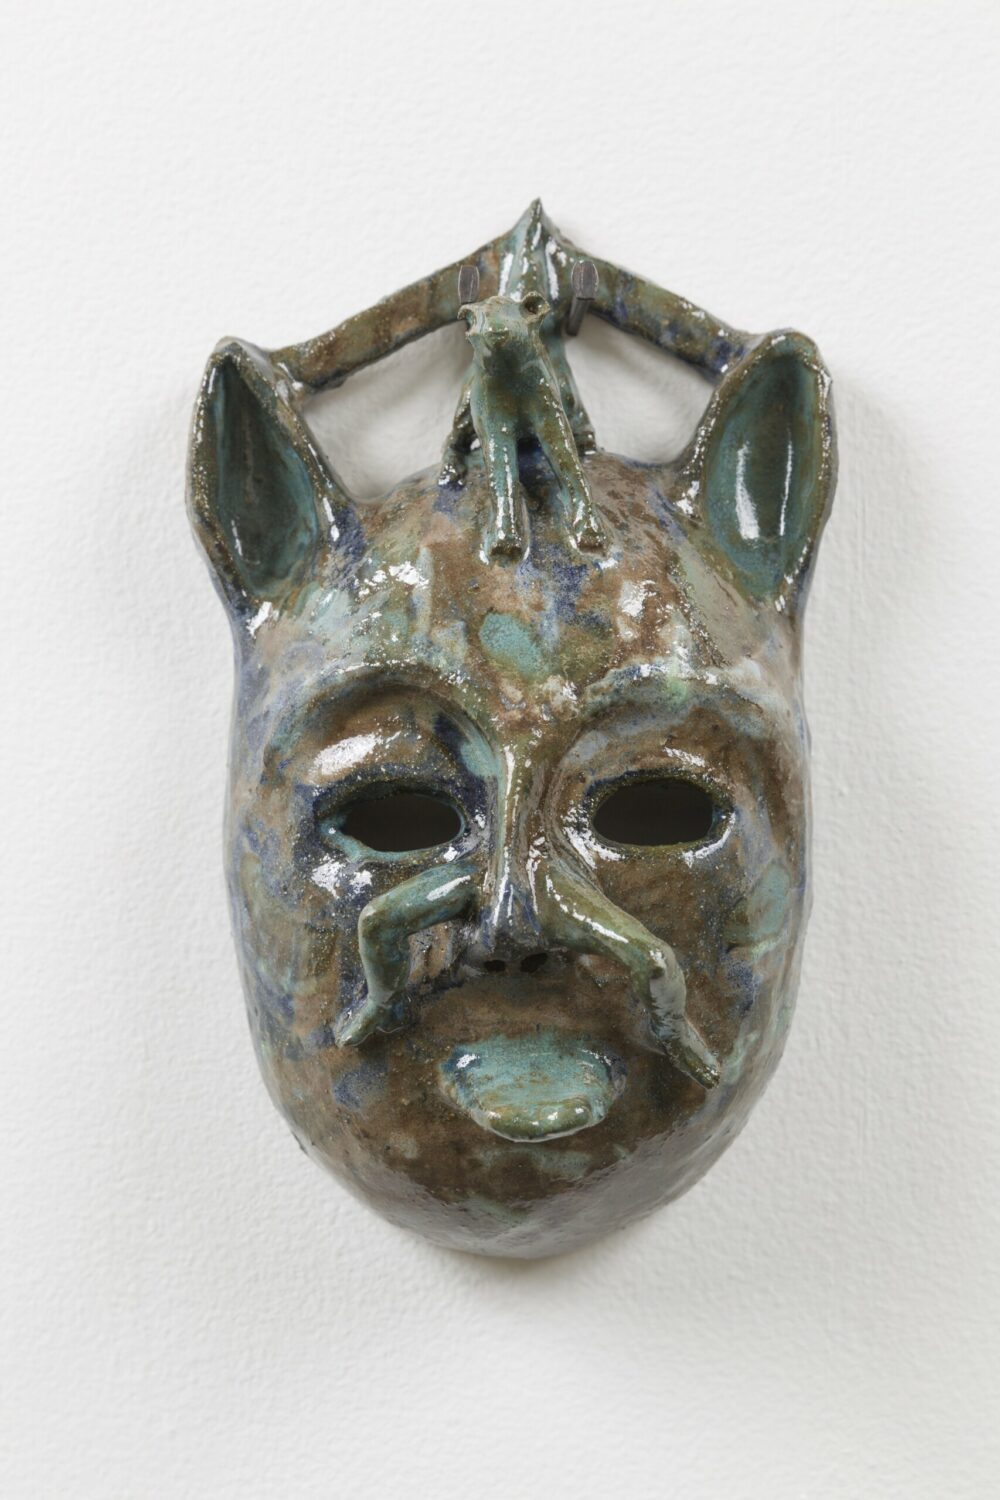 A glazed ceramic mask in silver and bronze tones, with ears and hollow eye sockets, and the centre of the face is shaped like the form of a small figure.